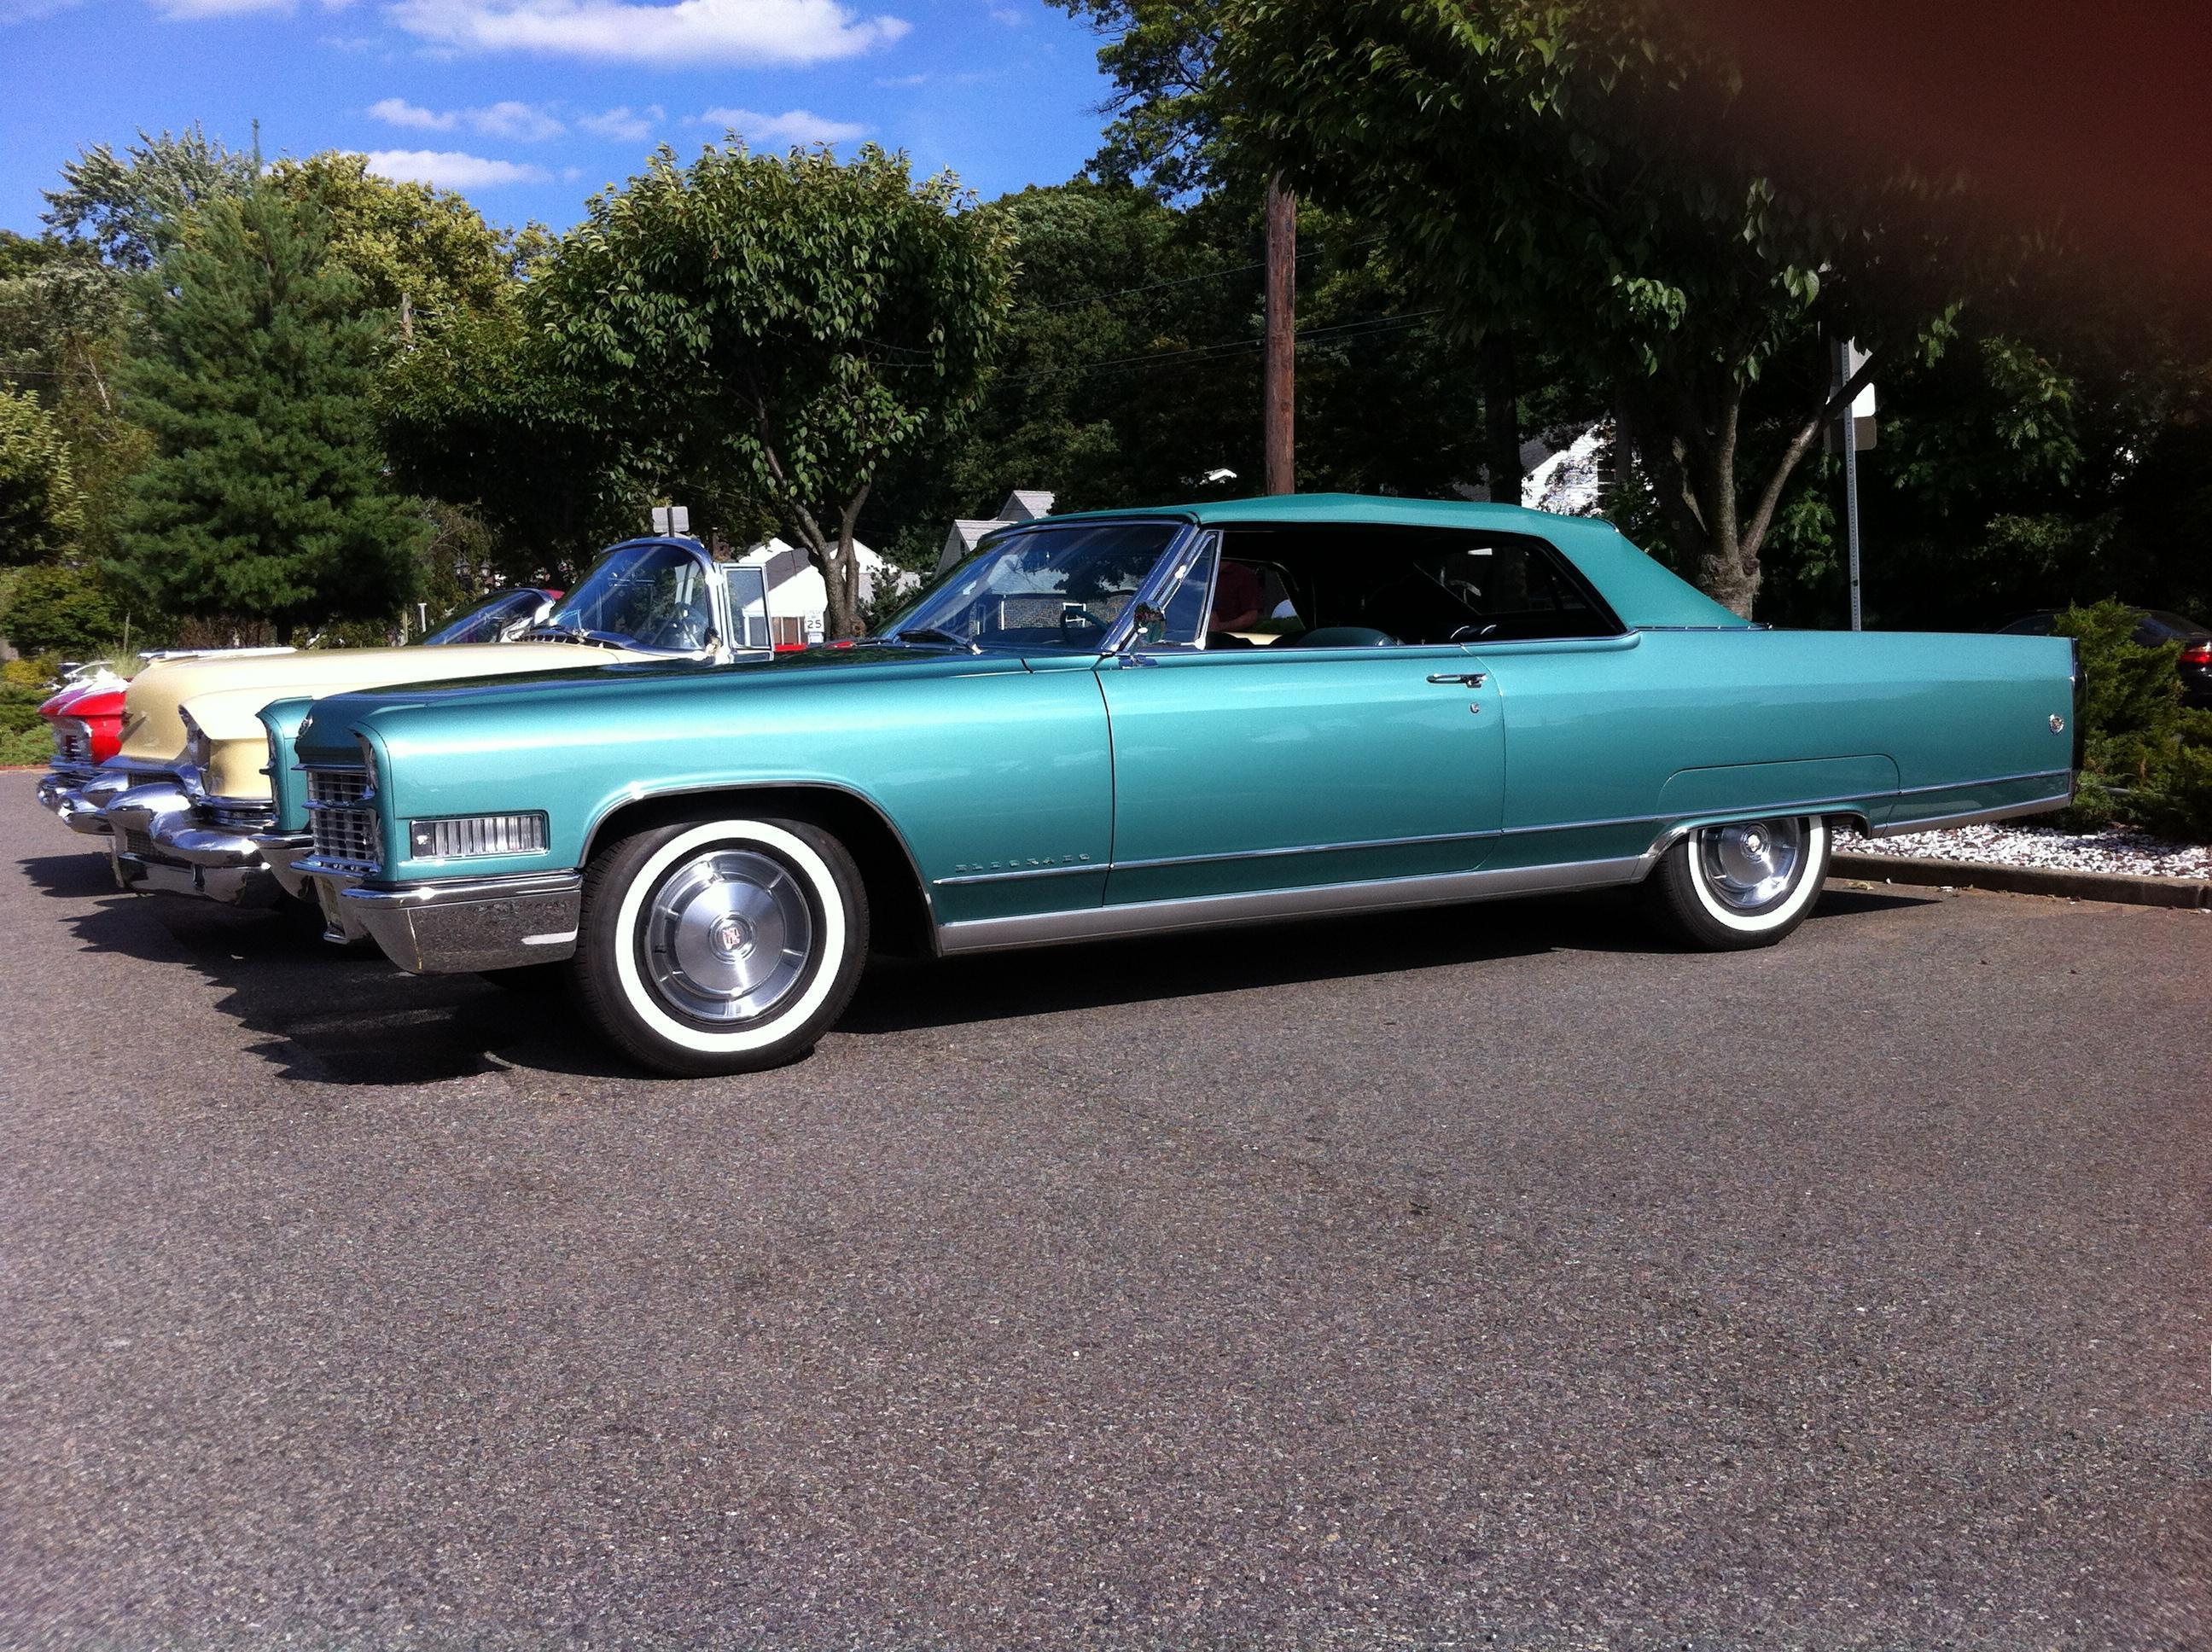 1966 Cadillac Eldorado Owner: Ralph Messina – Raritan River Region